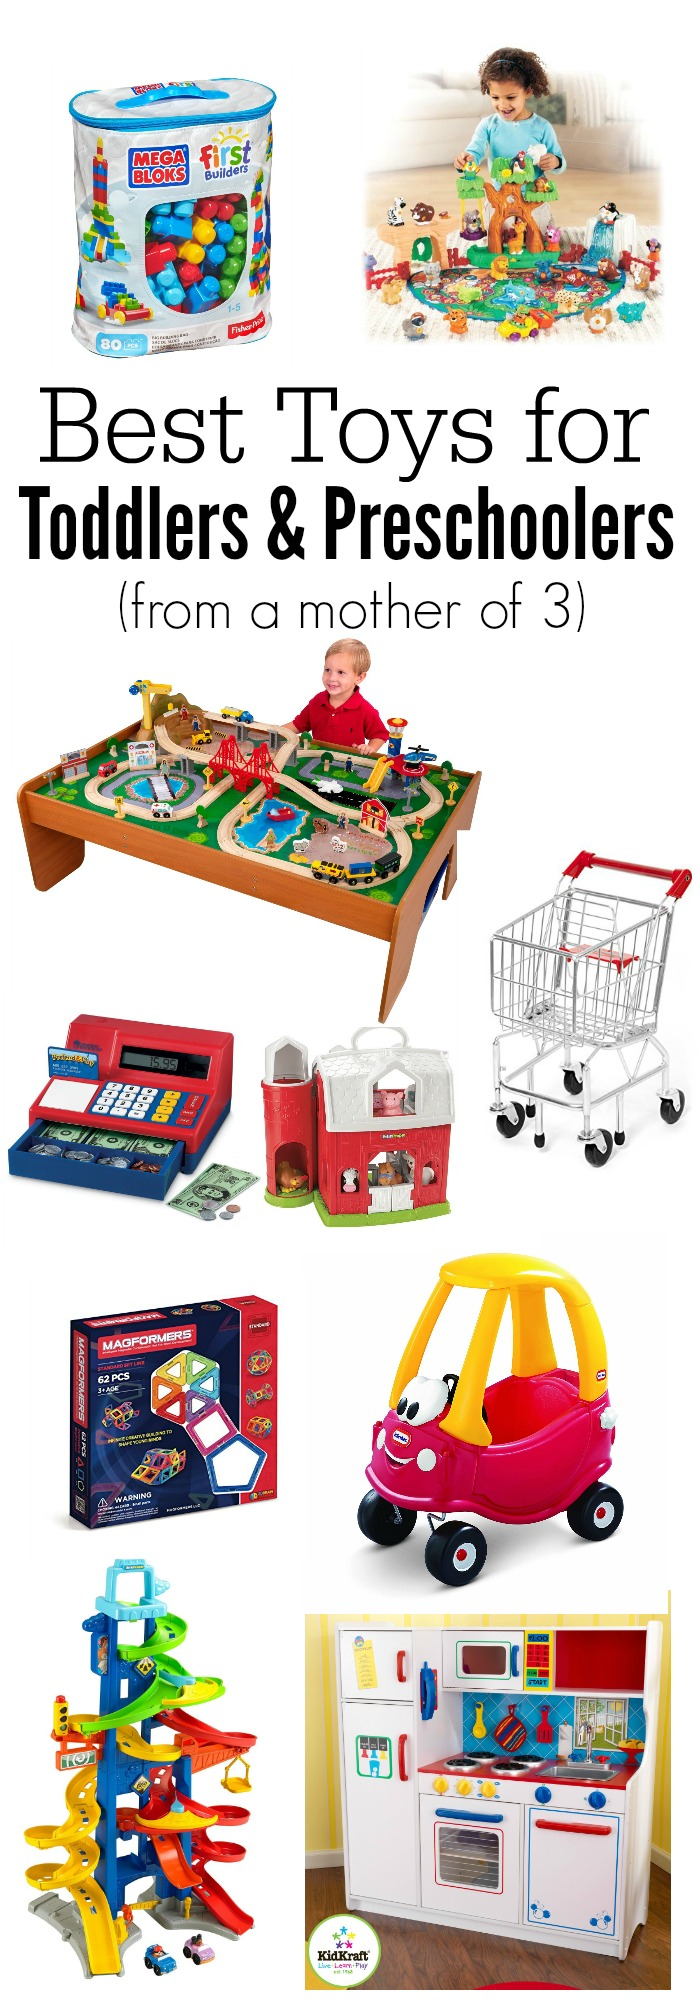 Coolest Toys For Christmas : Best toys for toddlers and preschoolers the resourceful mama